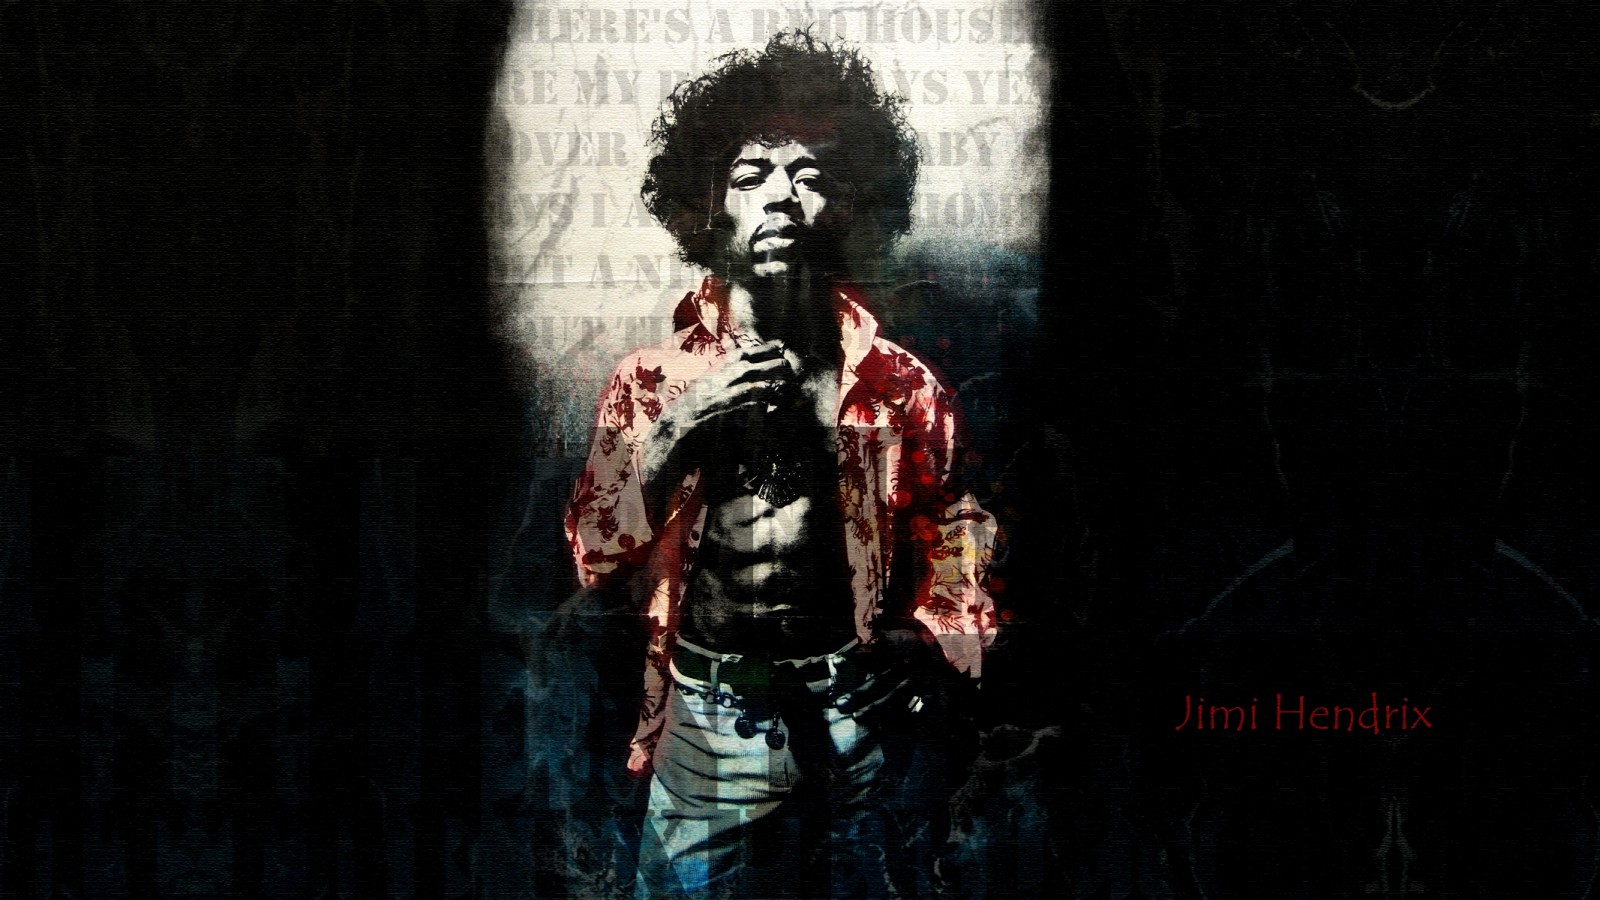 jimi hendrix wallpaper 10 - photo #6